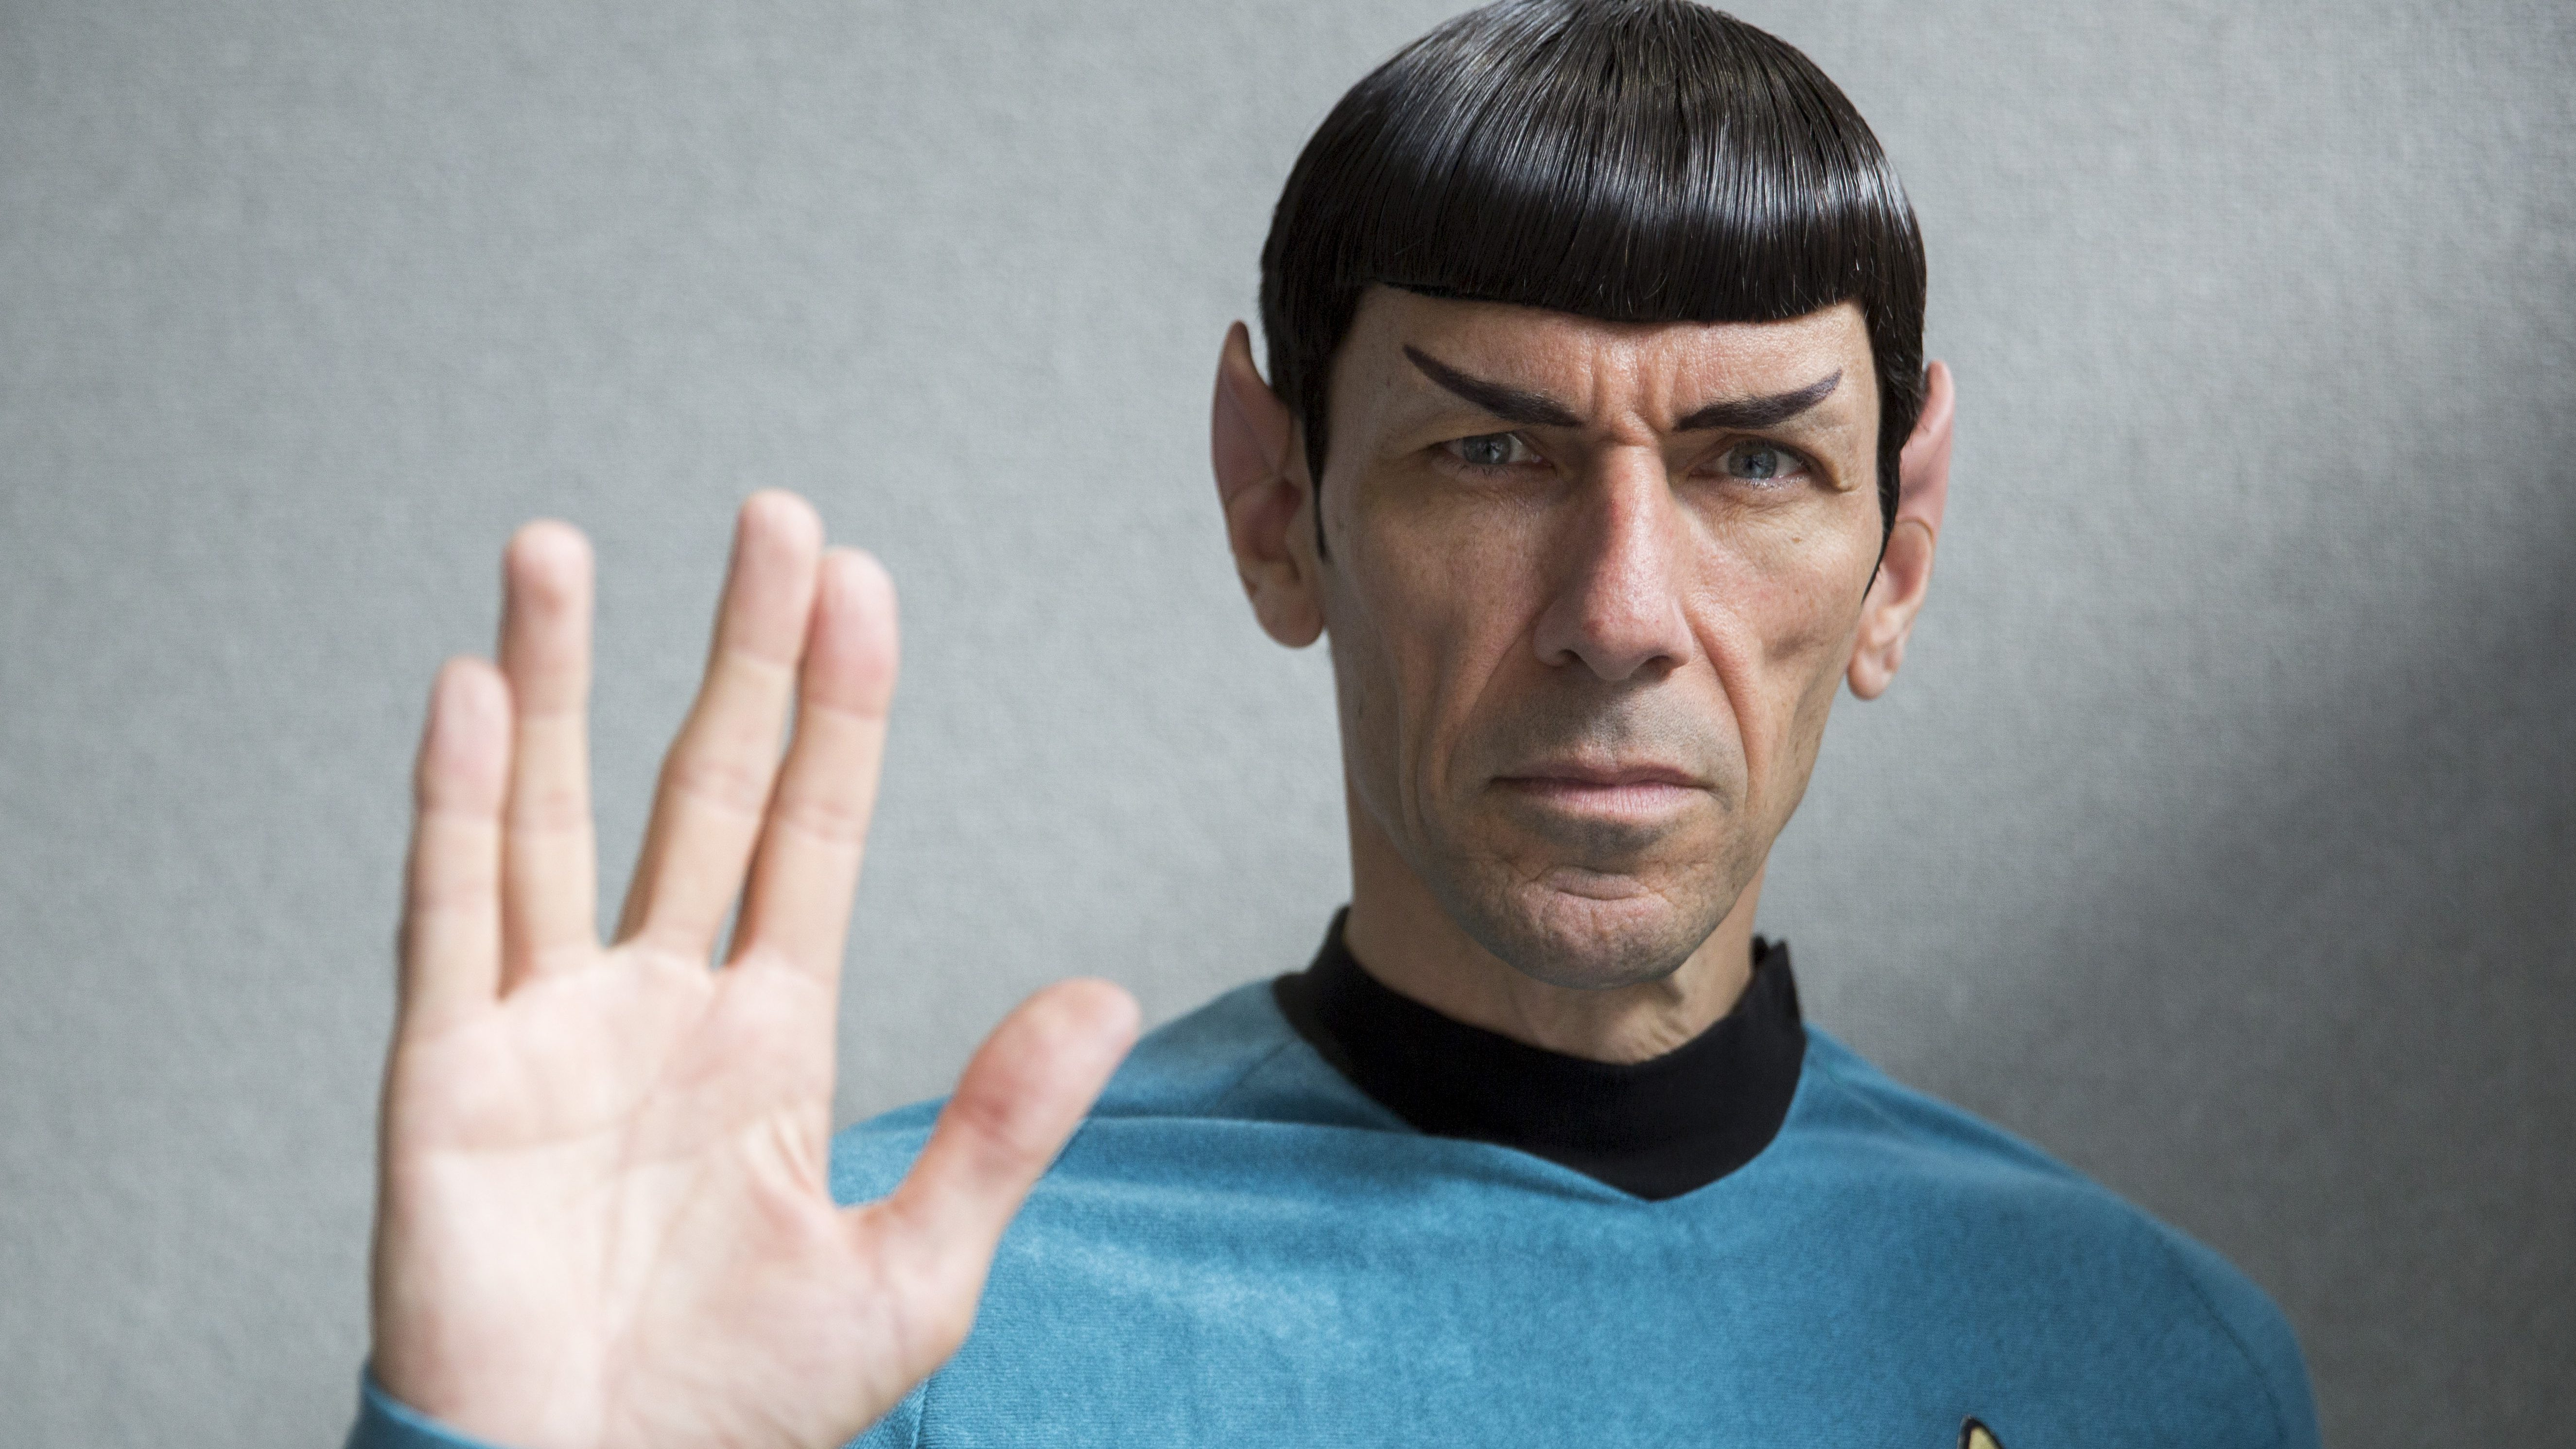 """An impersonator poses in costume as the character Mr Spock from the science fiction series """"Star Trek"""" at the London Film and Comic-Con in London, Britain July 17, 2015. REUTERS/Neil Hall      TPX IMAGES OF THE DAY      - RTX1KPX6"""